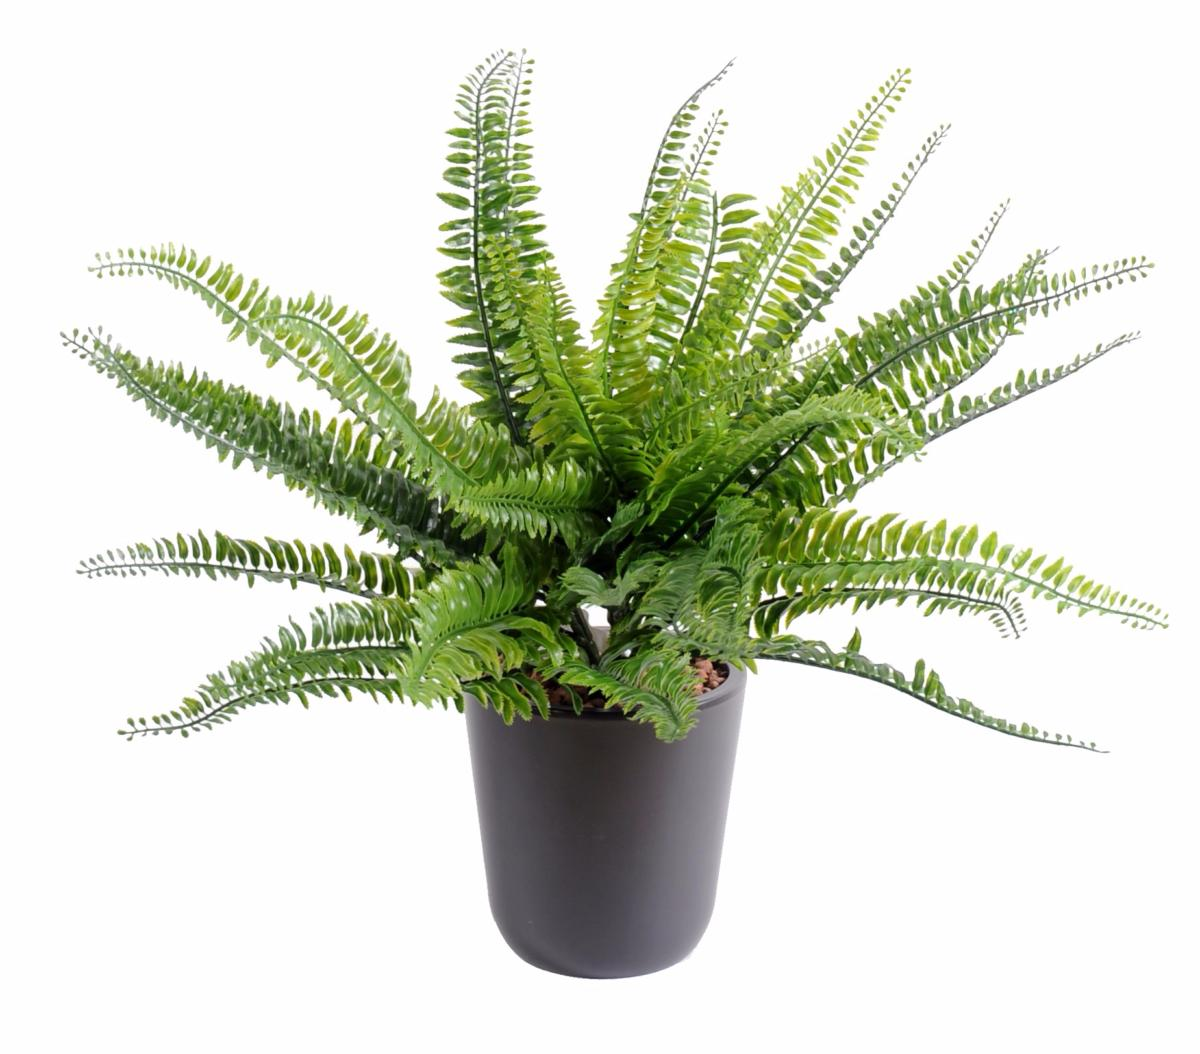 Plante artificielle foug re boston plastique en piquet int rieur ext rieur h 40cm vert for Plante exterieur